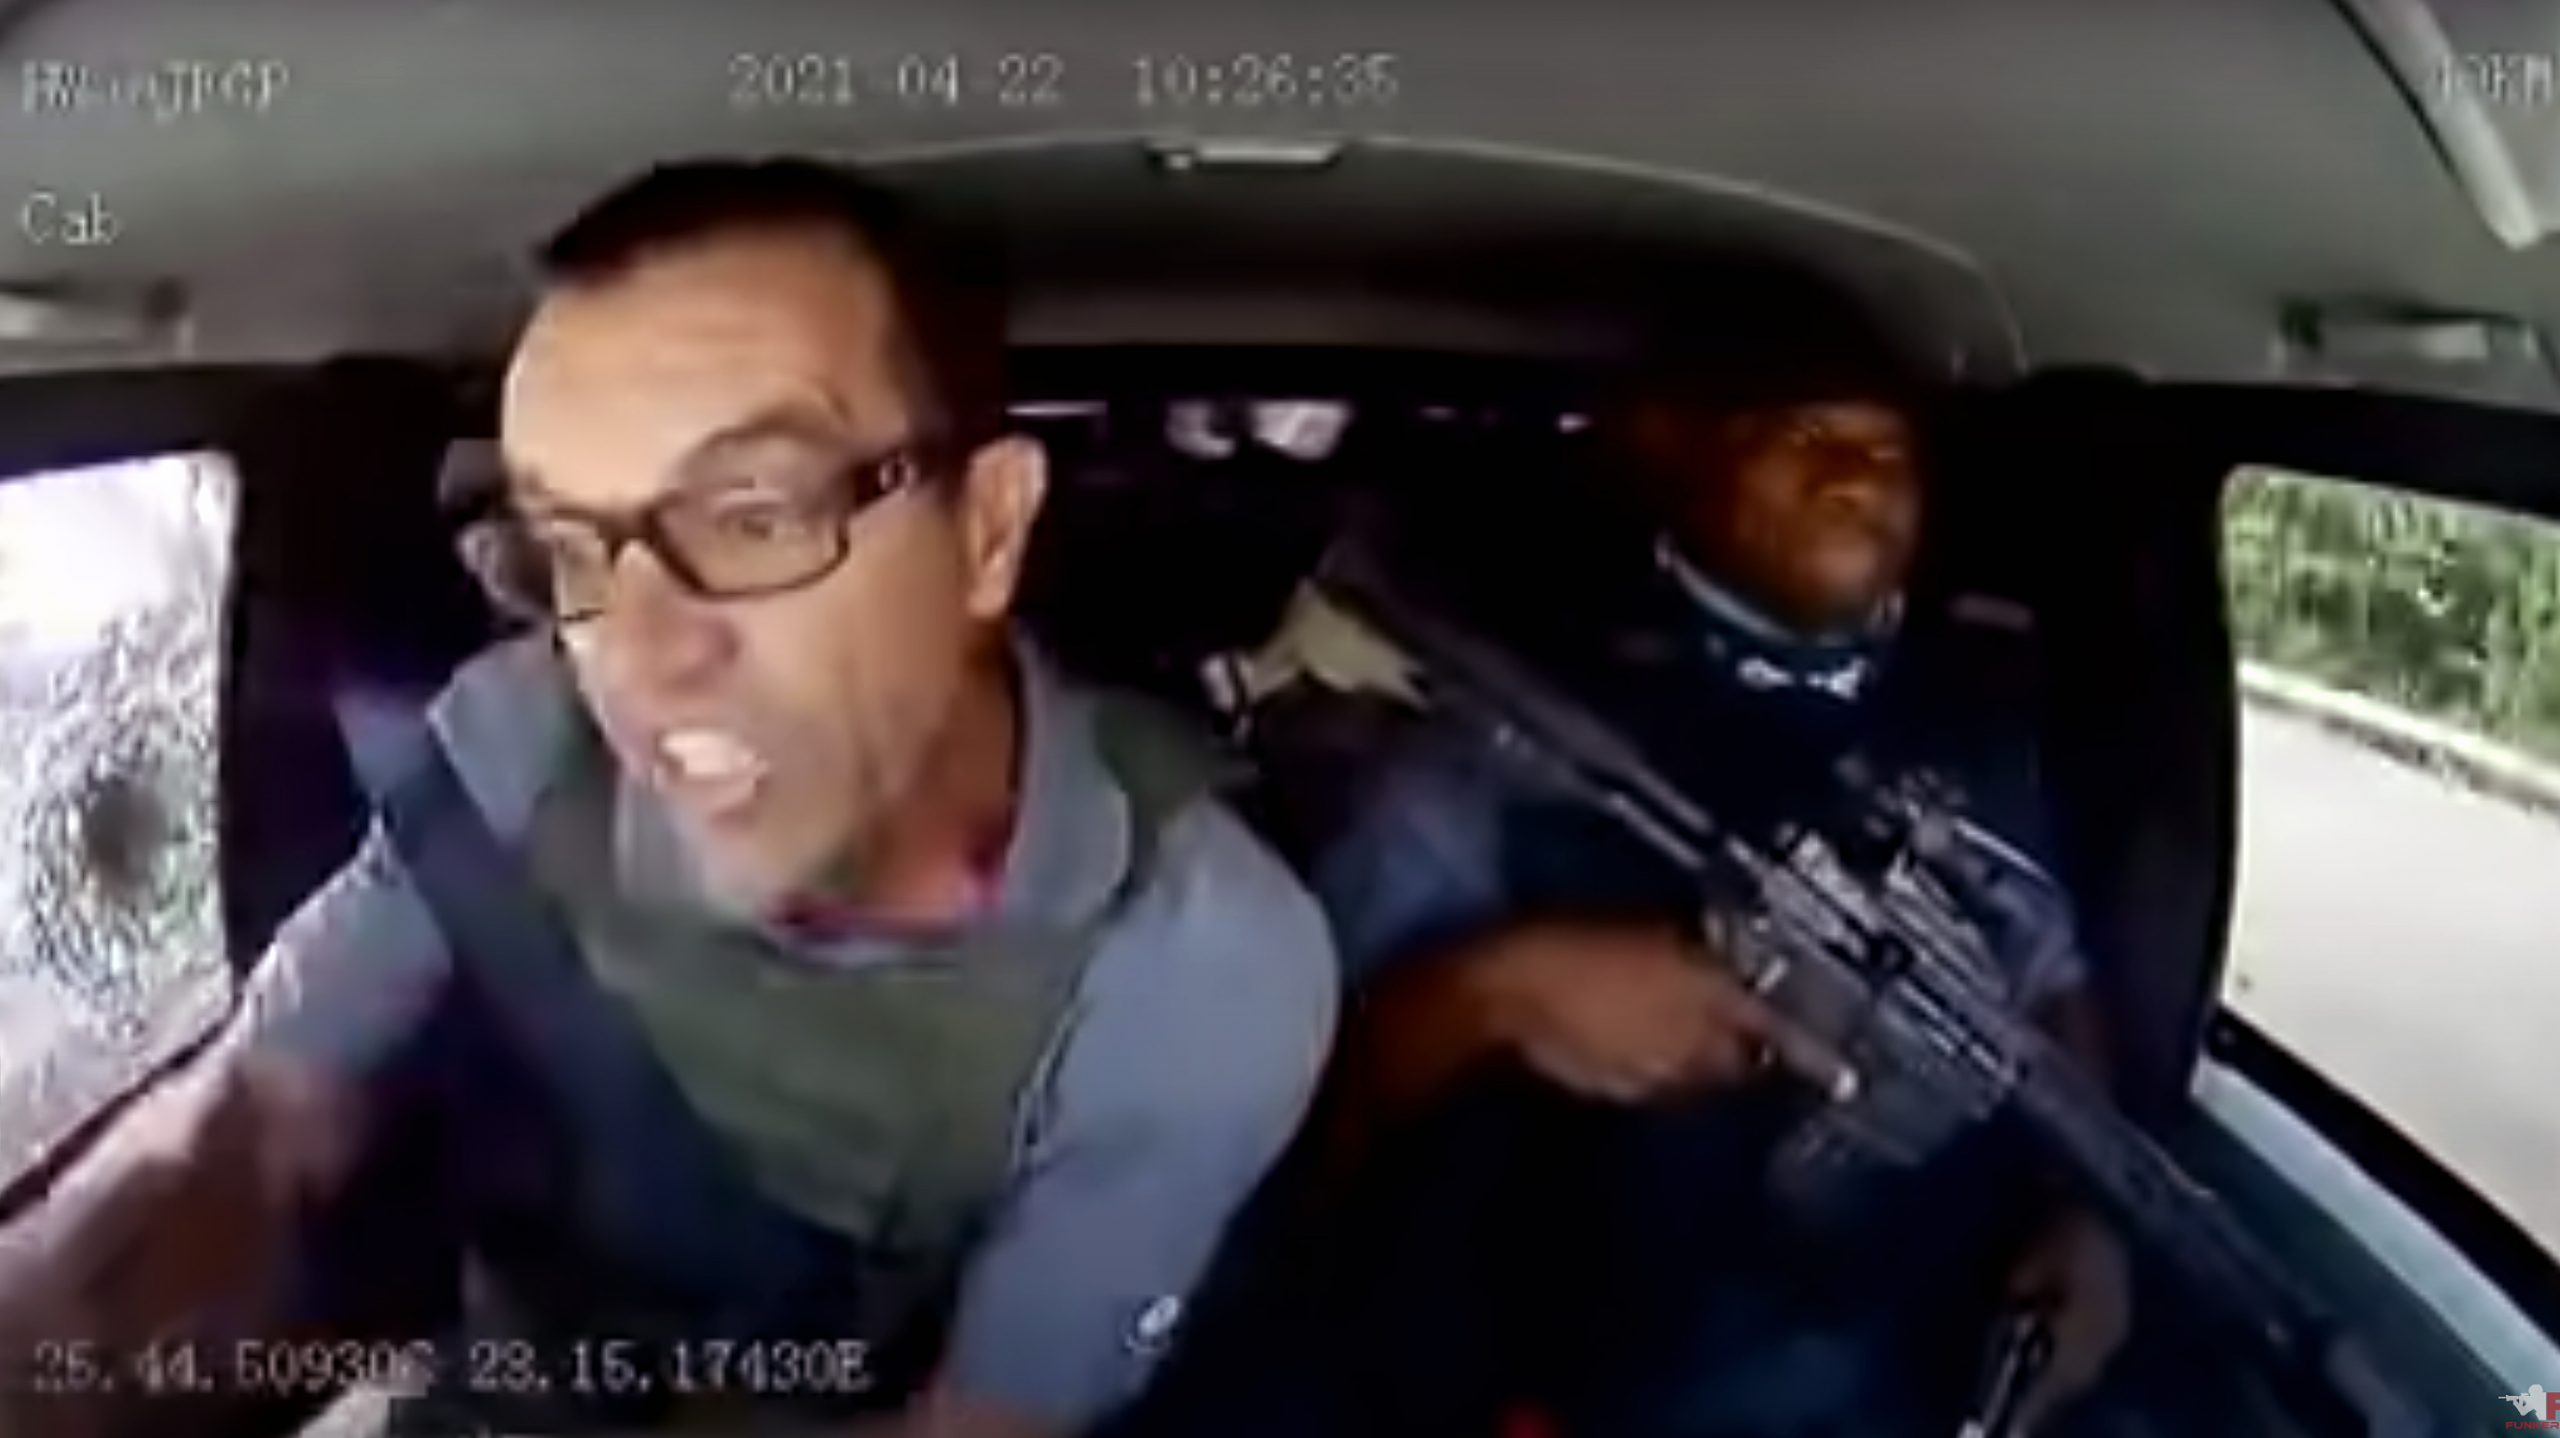 An armored car driver held off an armed attack and kept on driving.